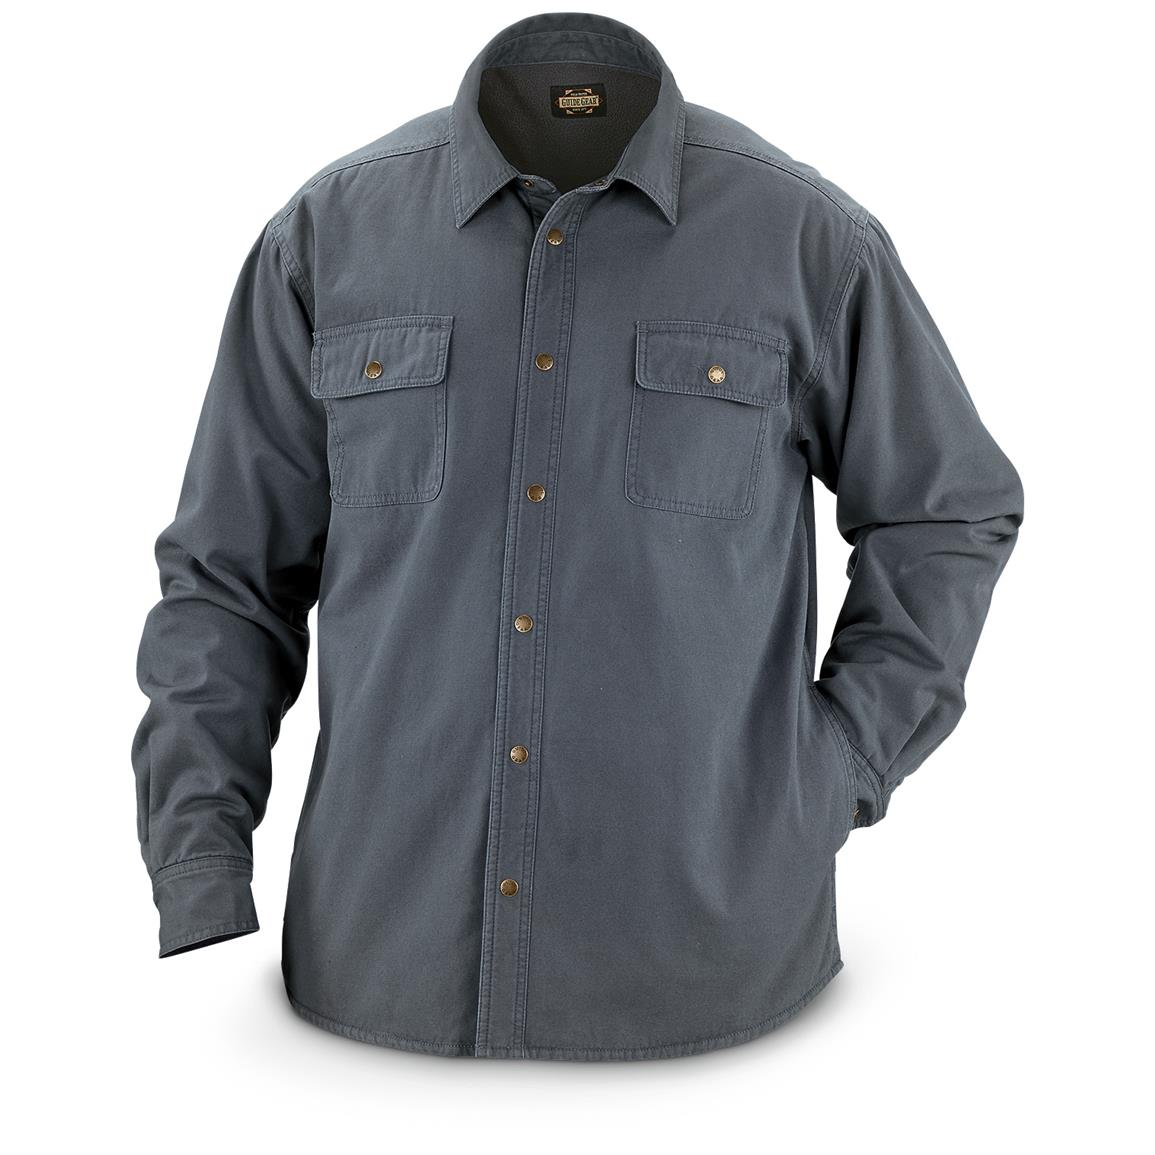 Guide Gear Men's Fleece-Lined Canvas Shirt Jacket, Charcoal